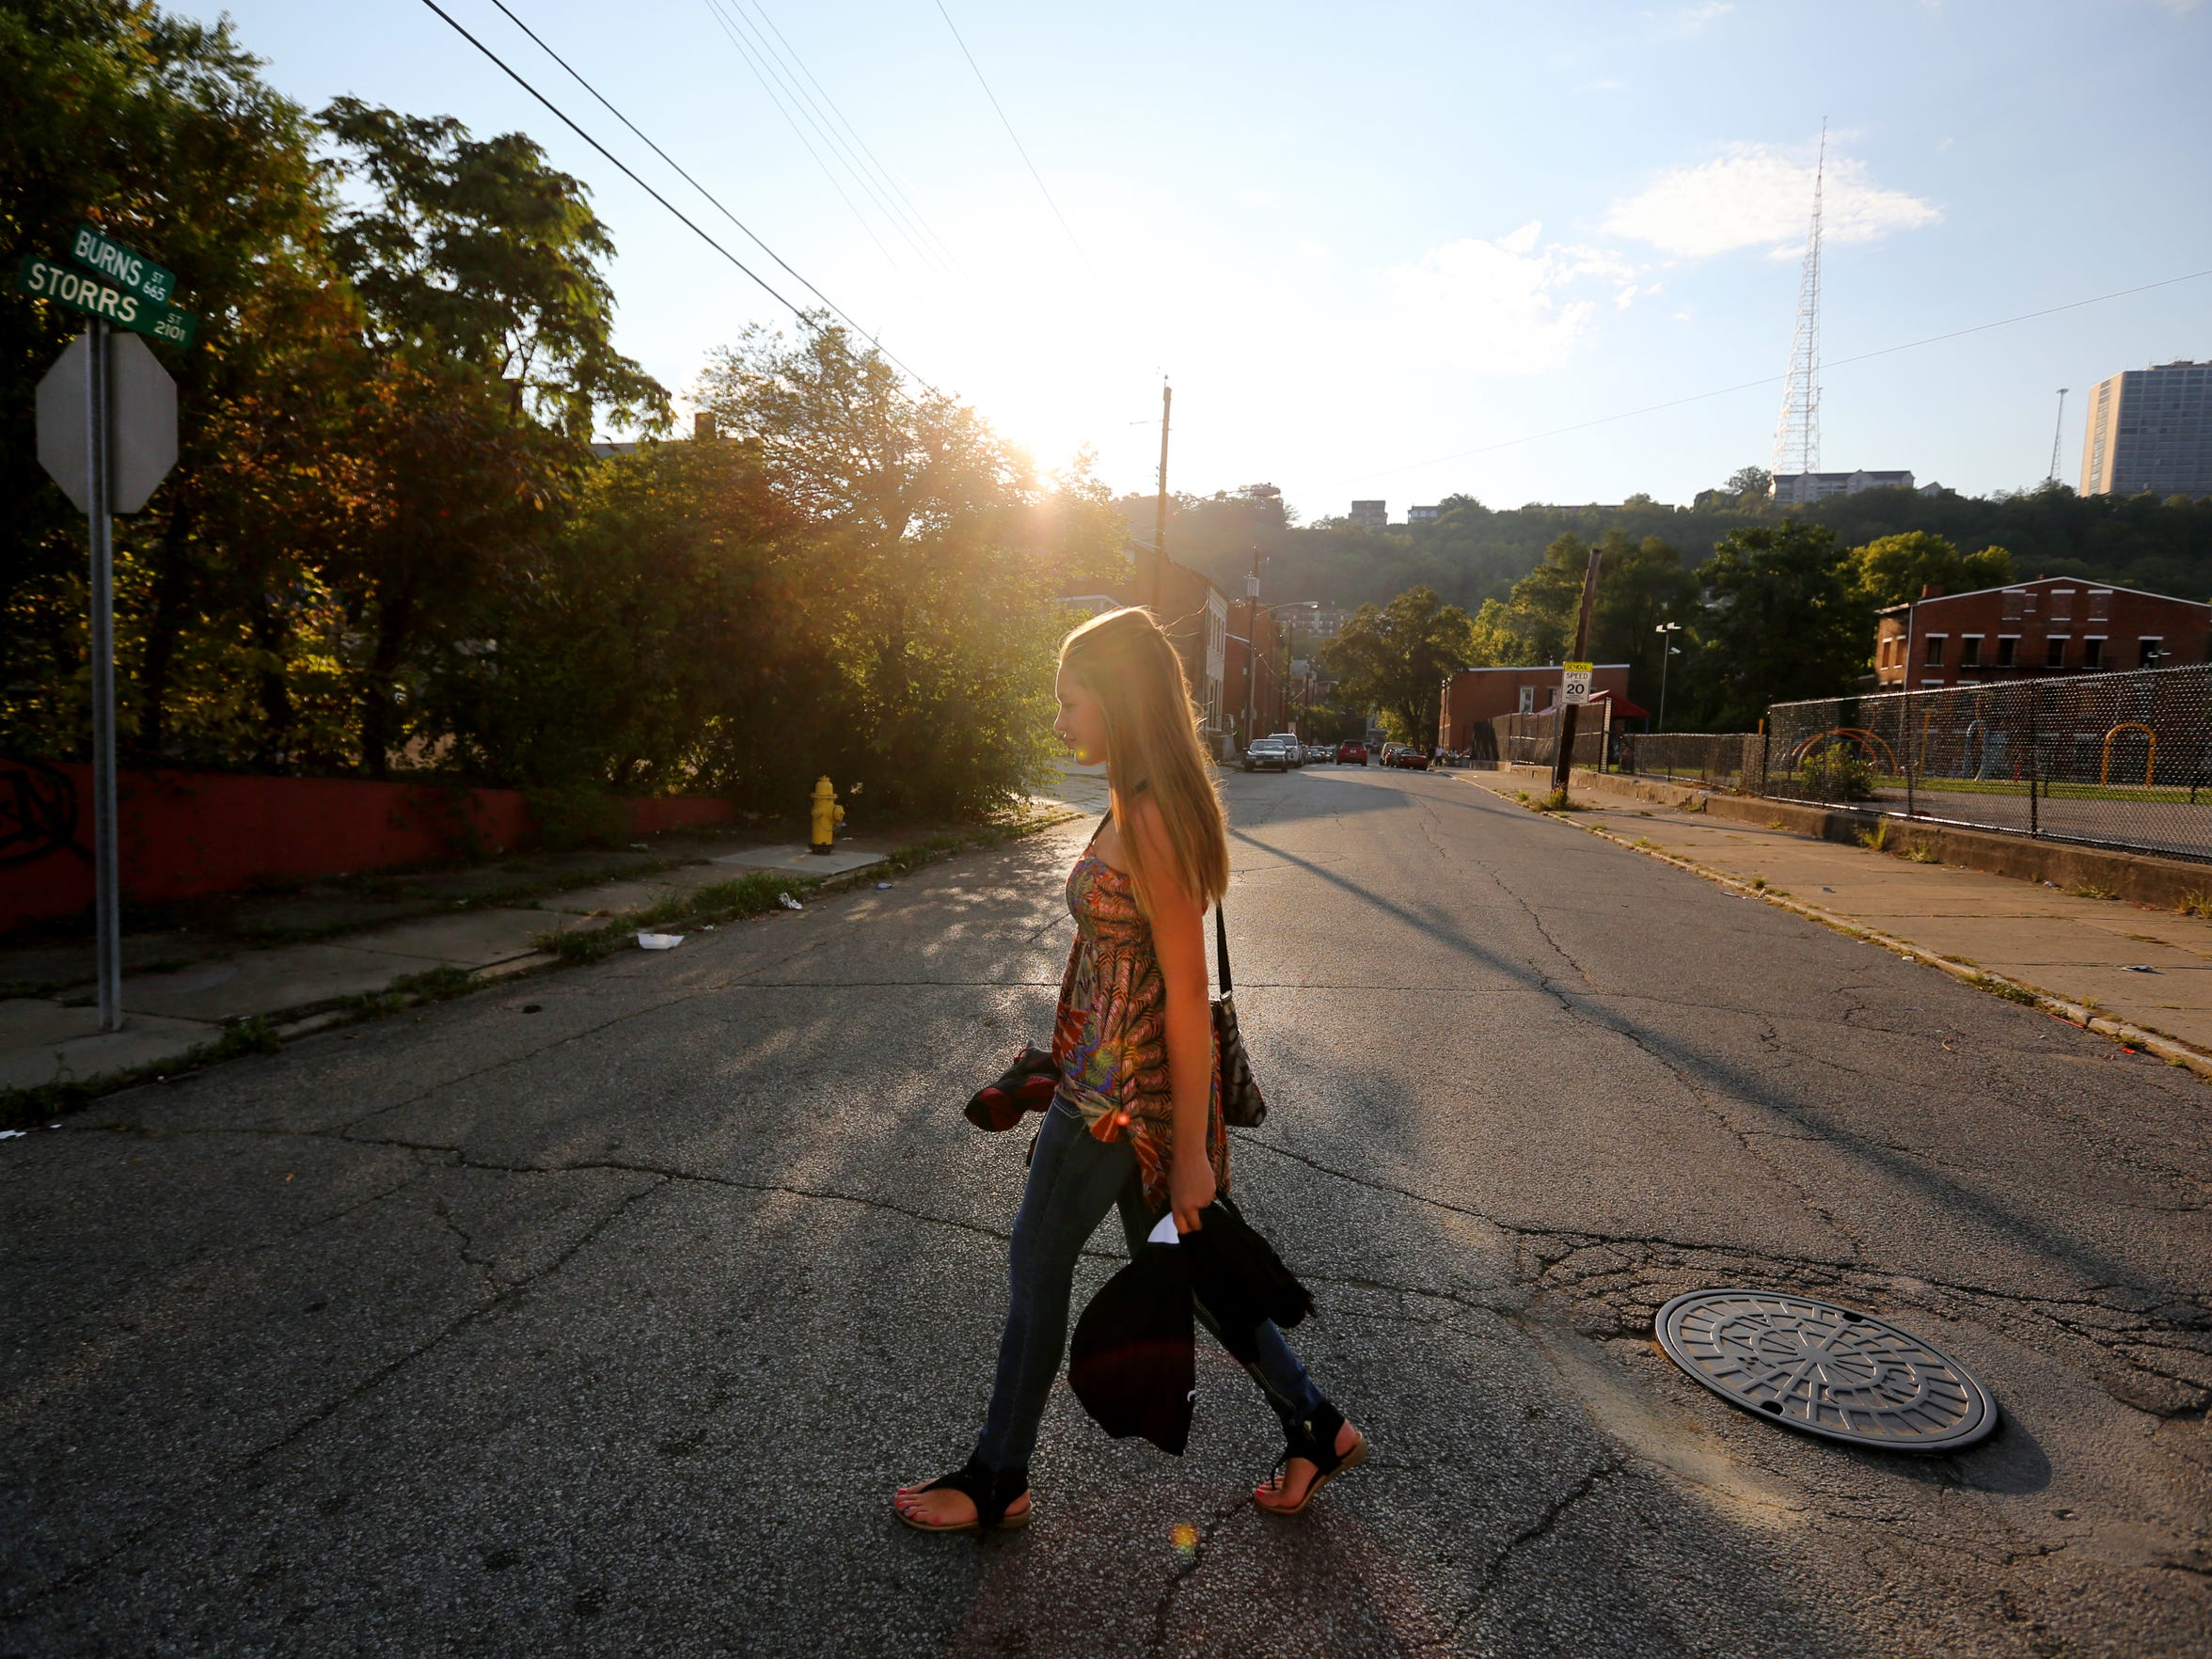 Kelsey McLean, 16, walks home from a volleyball game at Olyer School in Lower Price Hill where she is a junior. Once she checks in at home, she says she often wonders the neighborhood for hours looking for something to do.